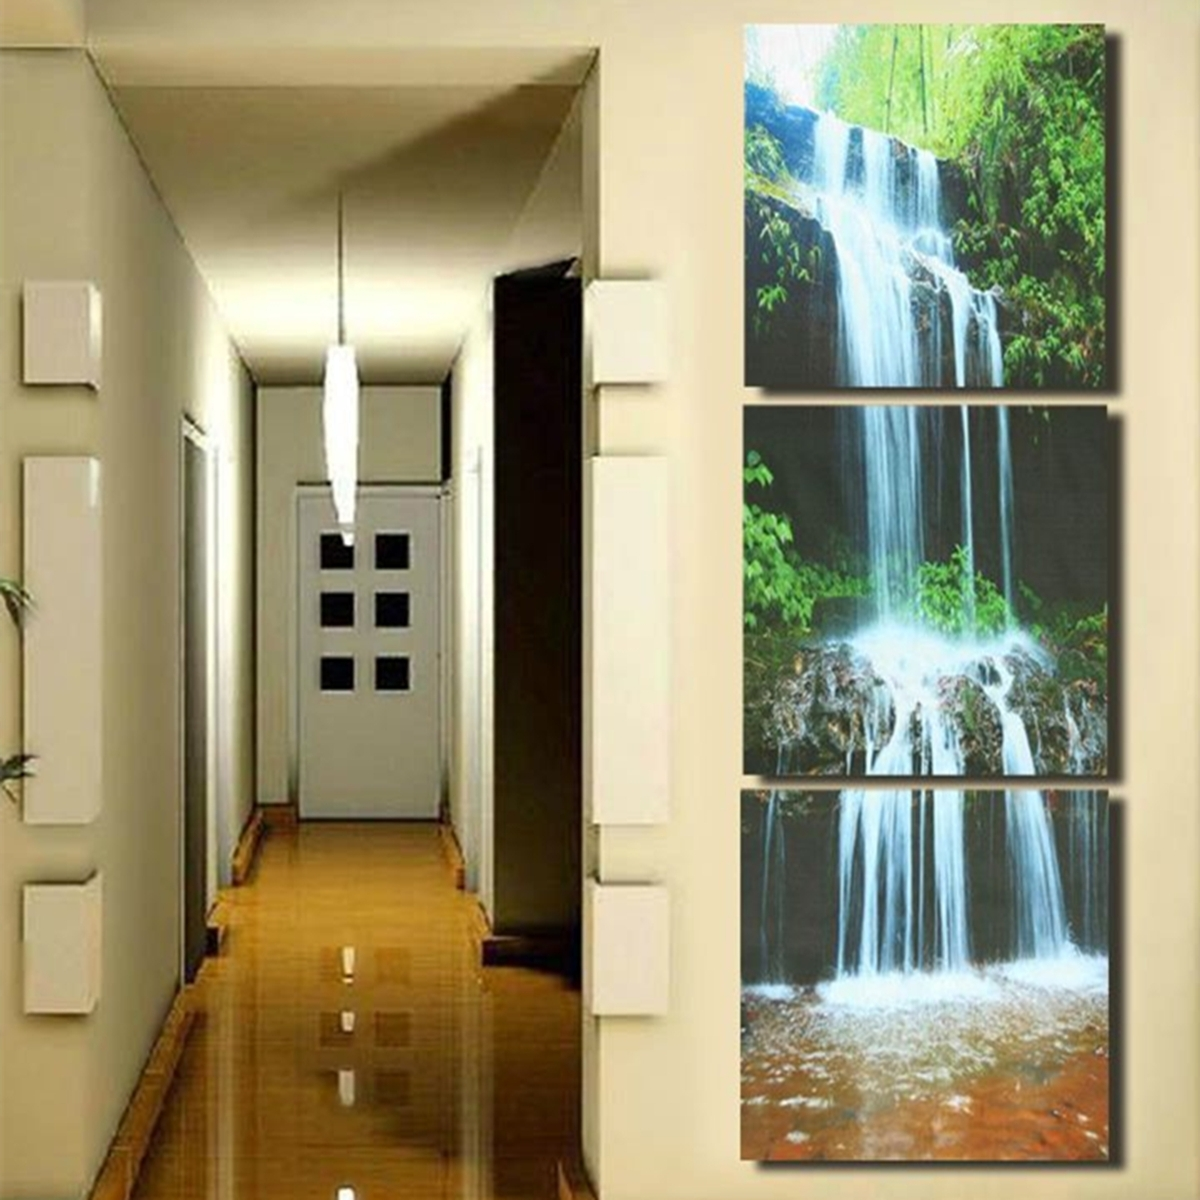 3 Cascade Large Waterfall Framed Print Painting Canvas Wall Art In Best And Newest Large Framed Canvas Wall Art (View 17 of 20)